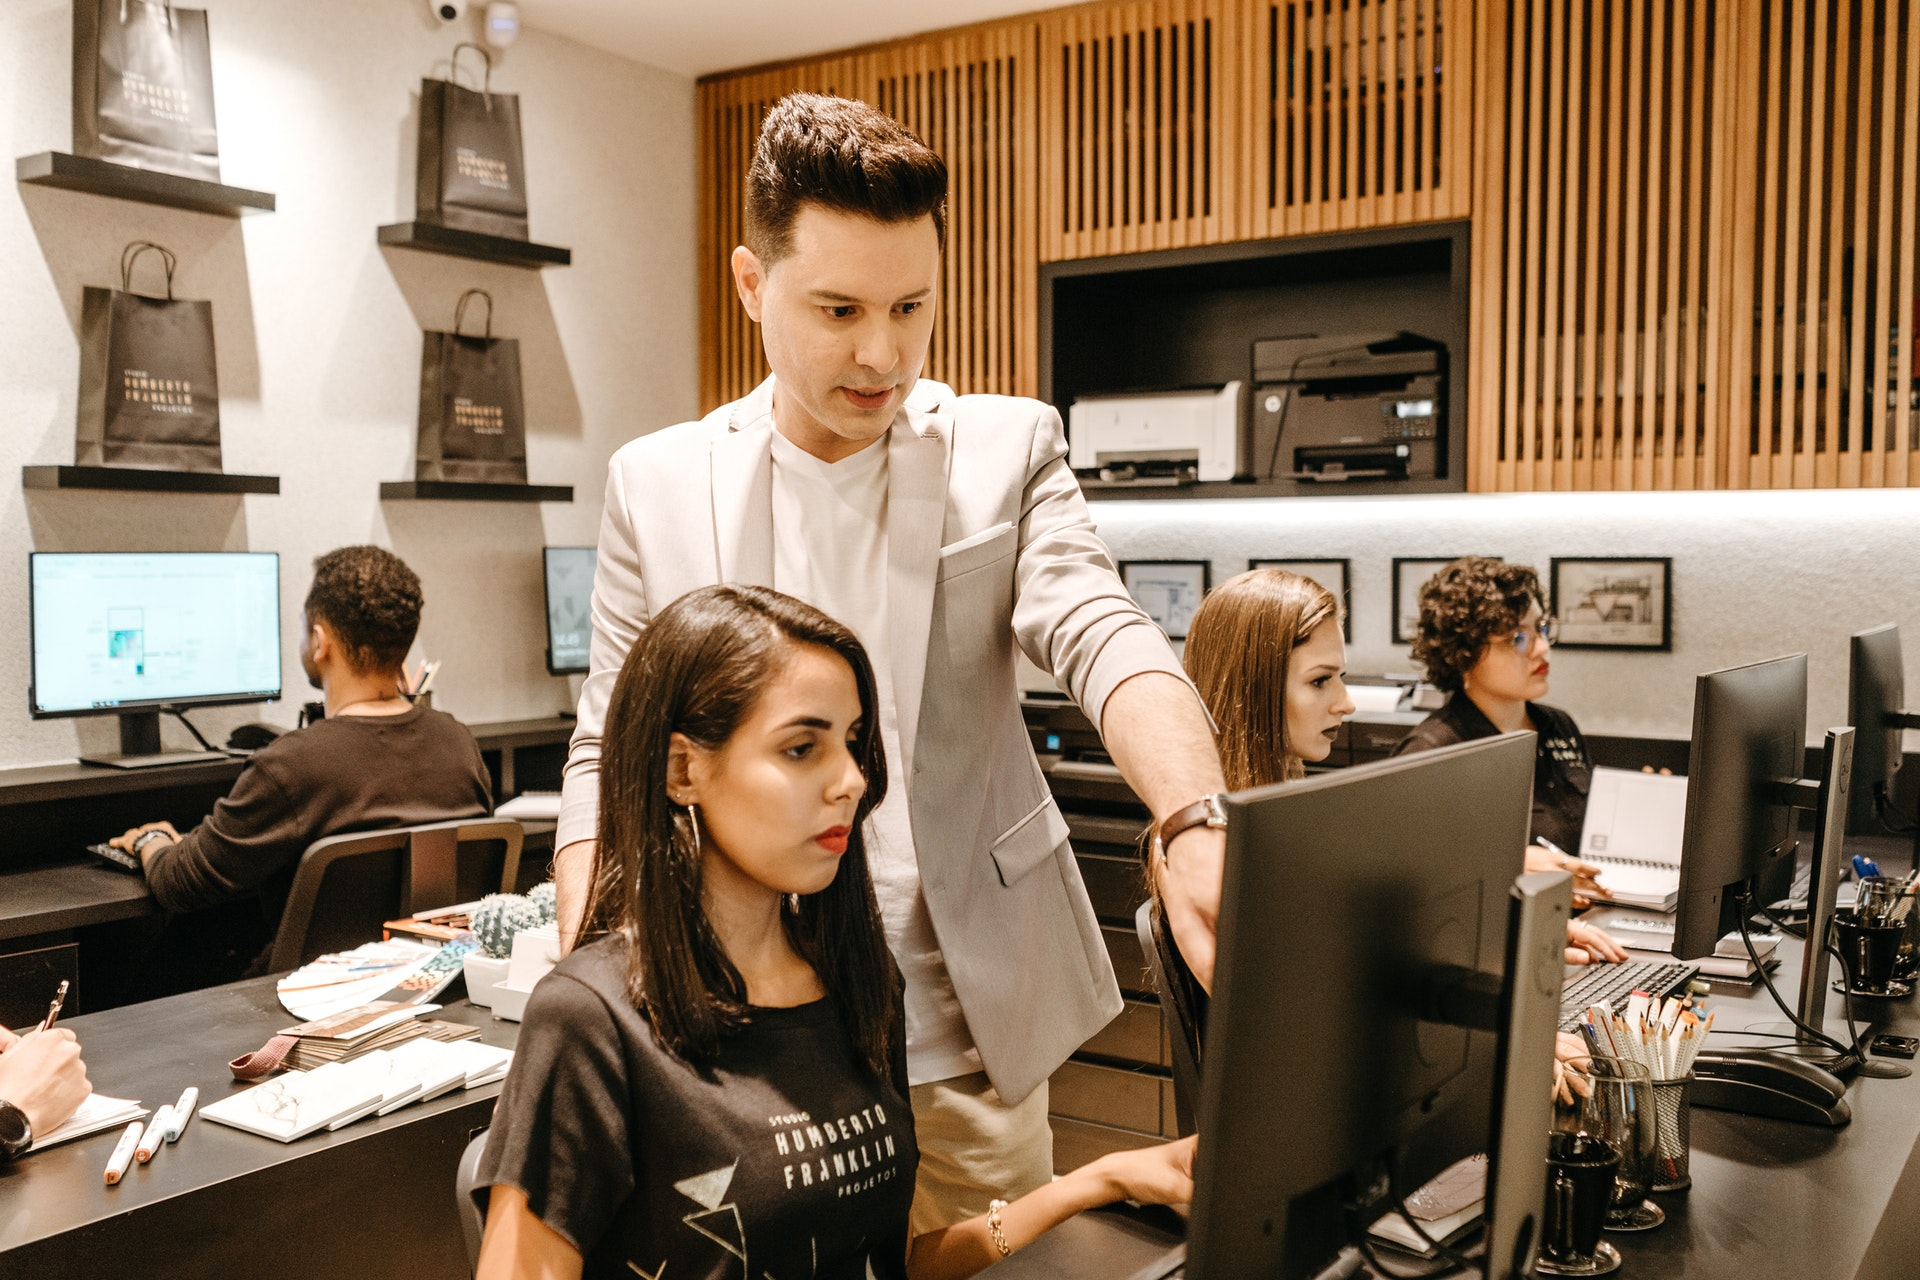 man-teaching-woman-in-front-of-monitor-3285203